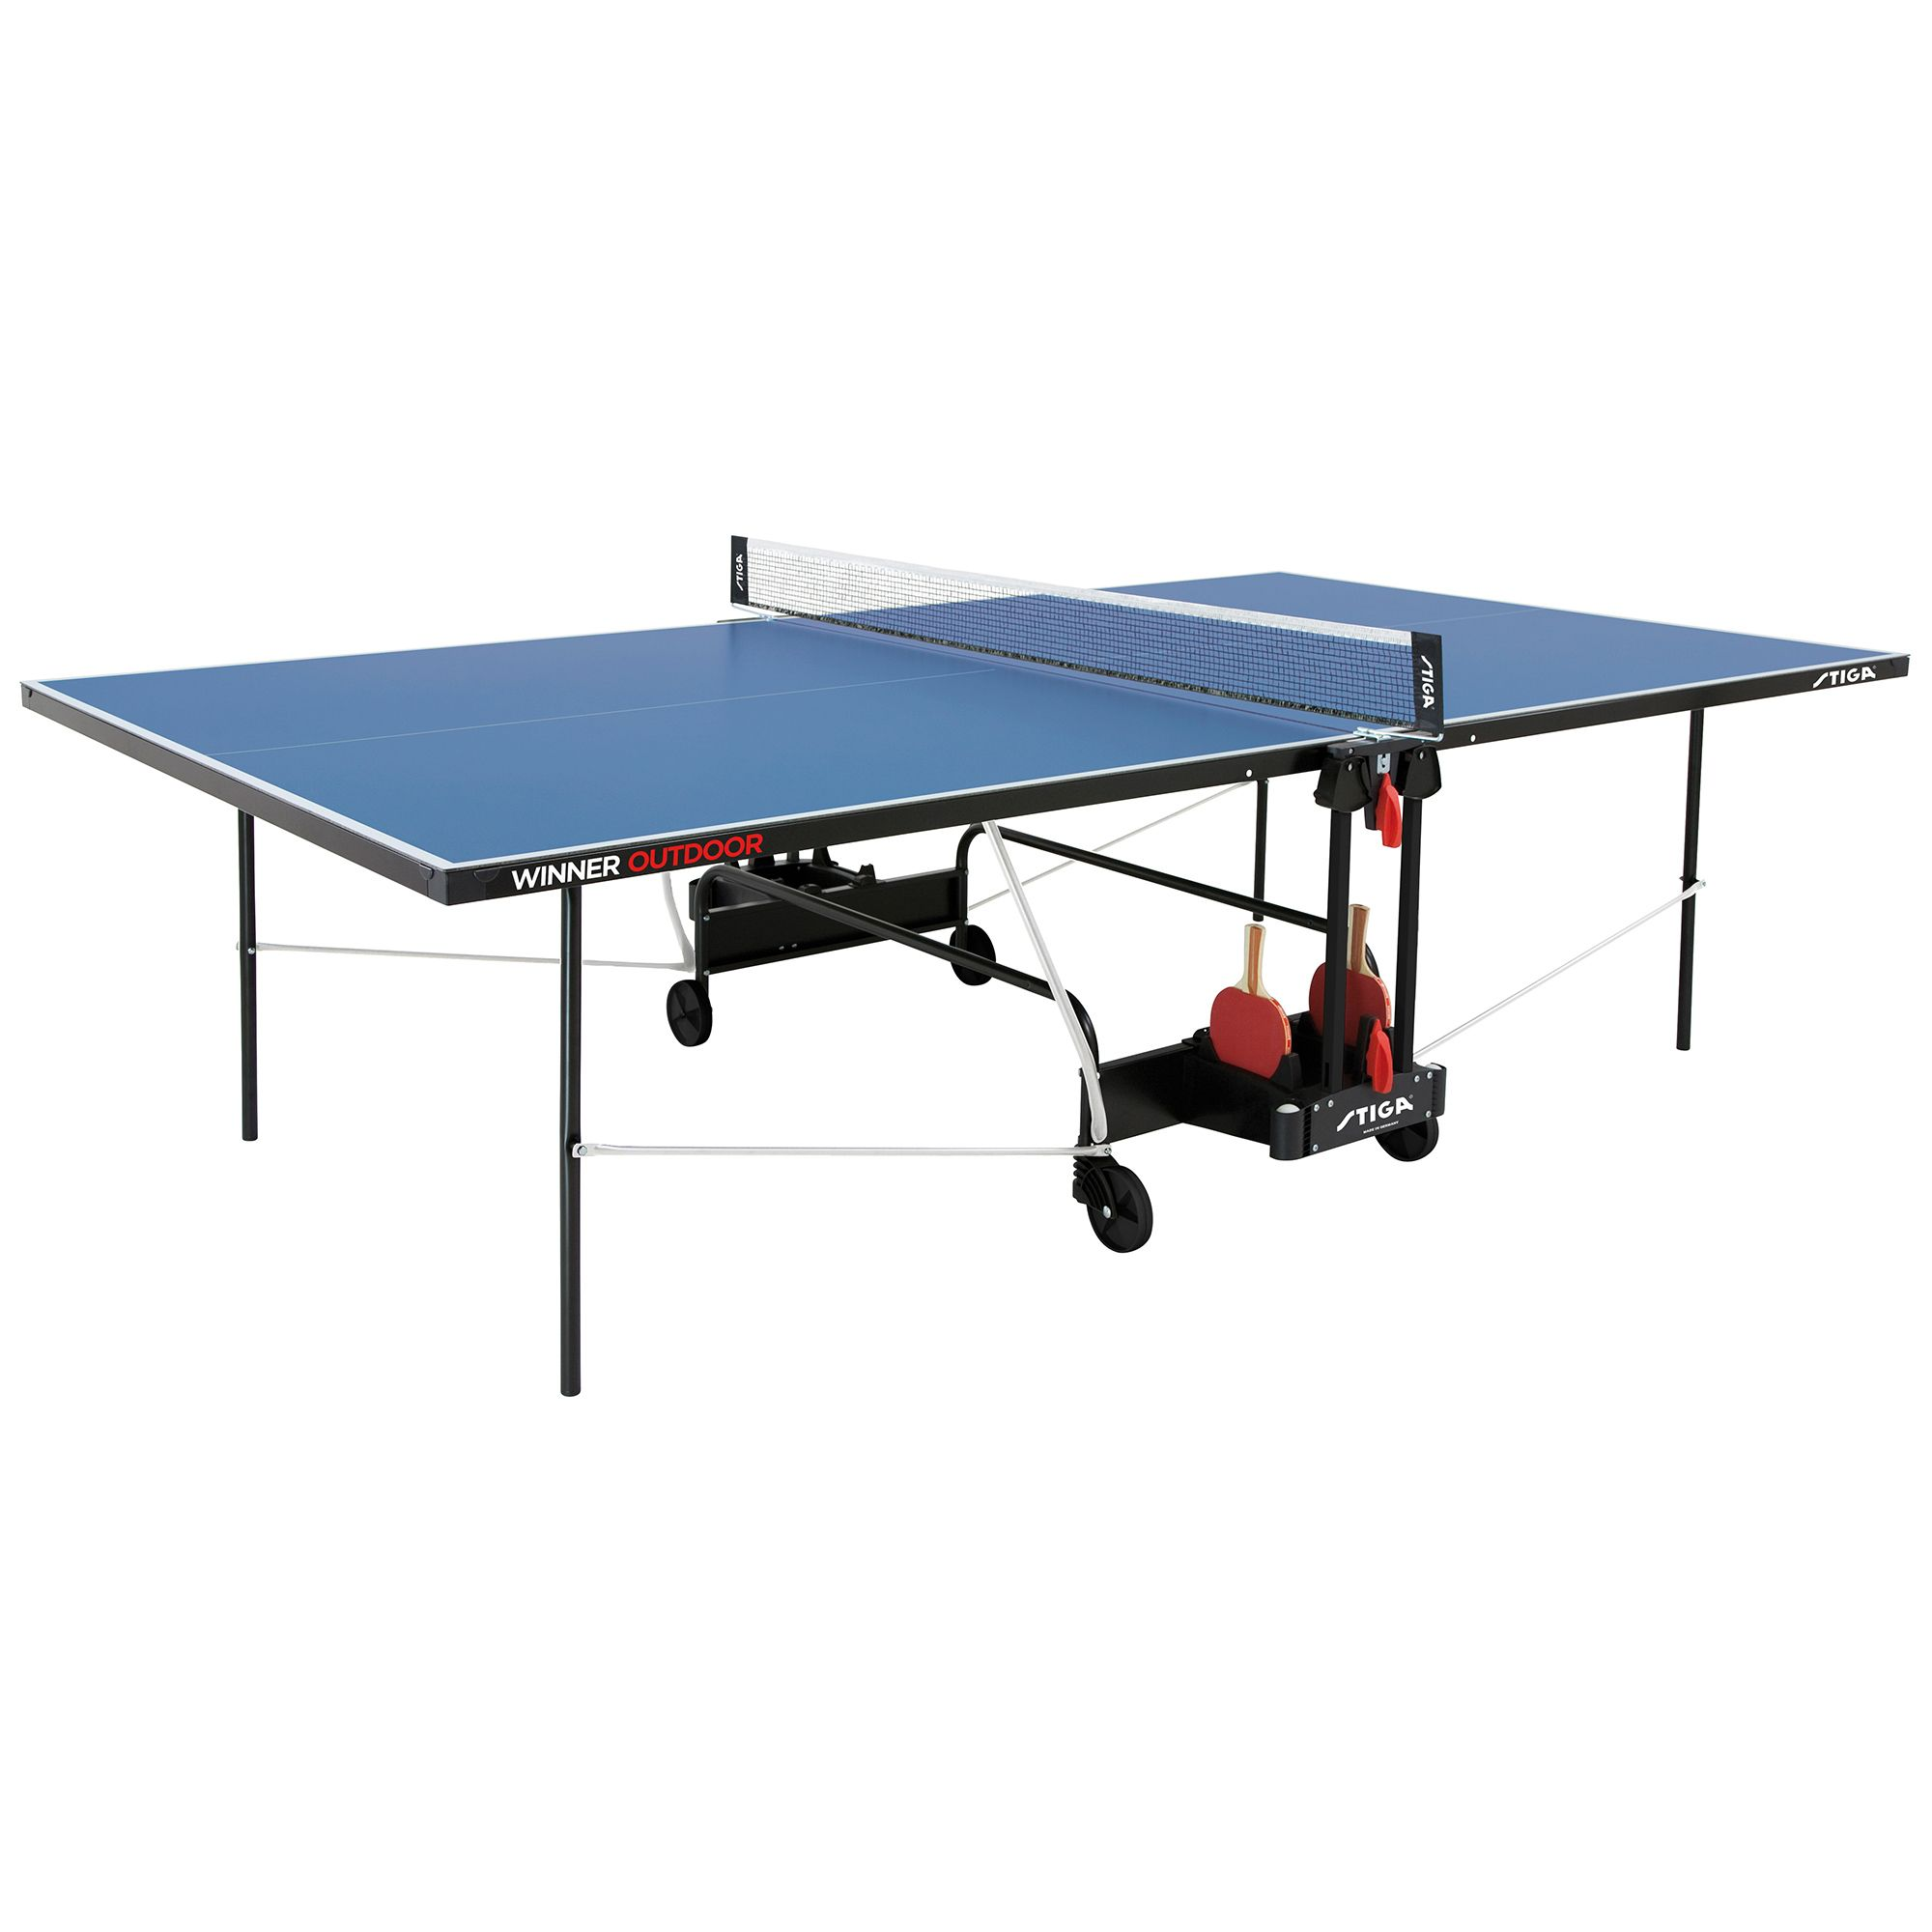 Stiga winner outdoor table tennis table - Weatherproof table tennis table ...